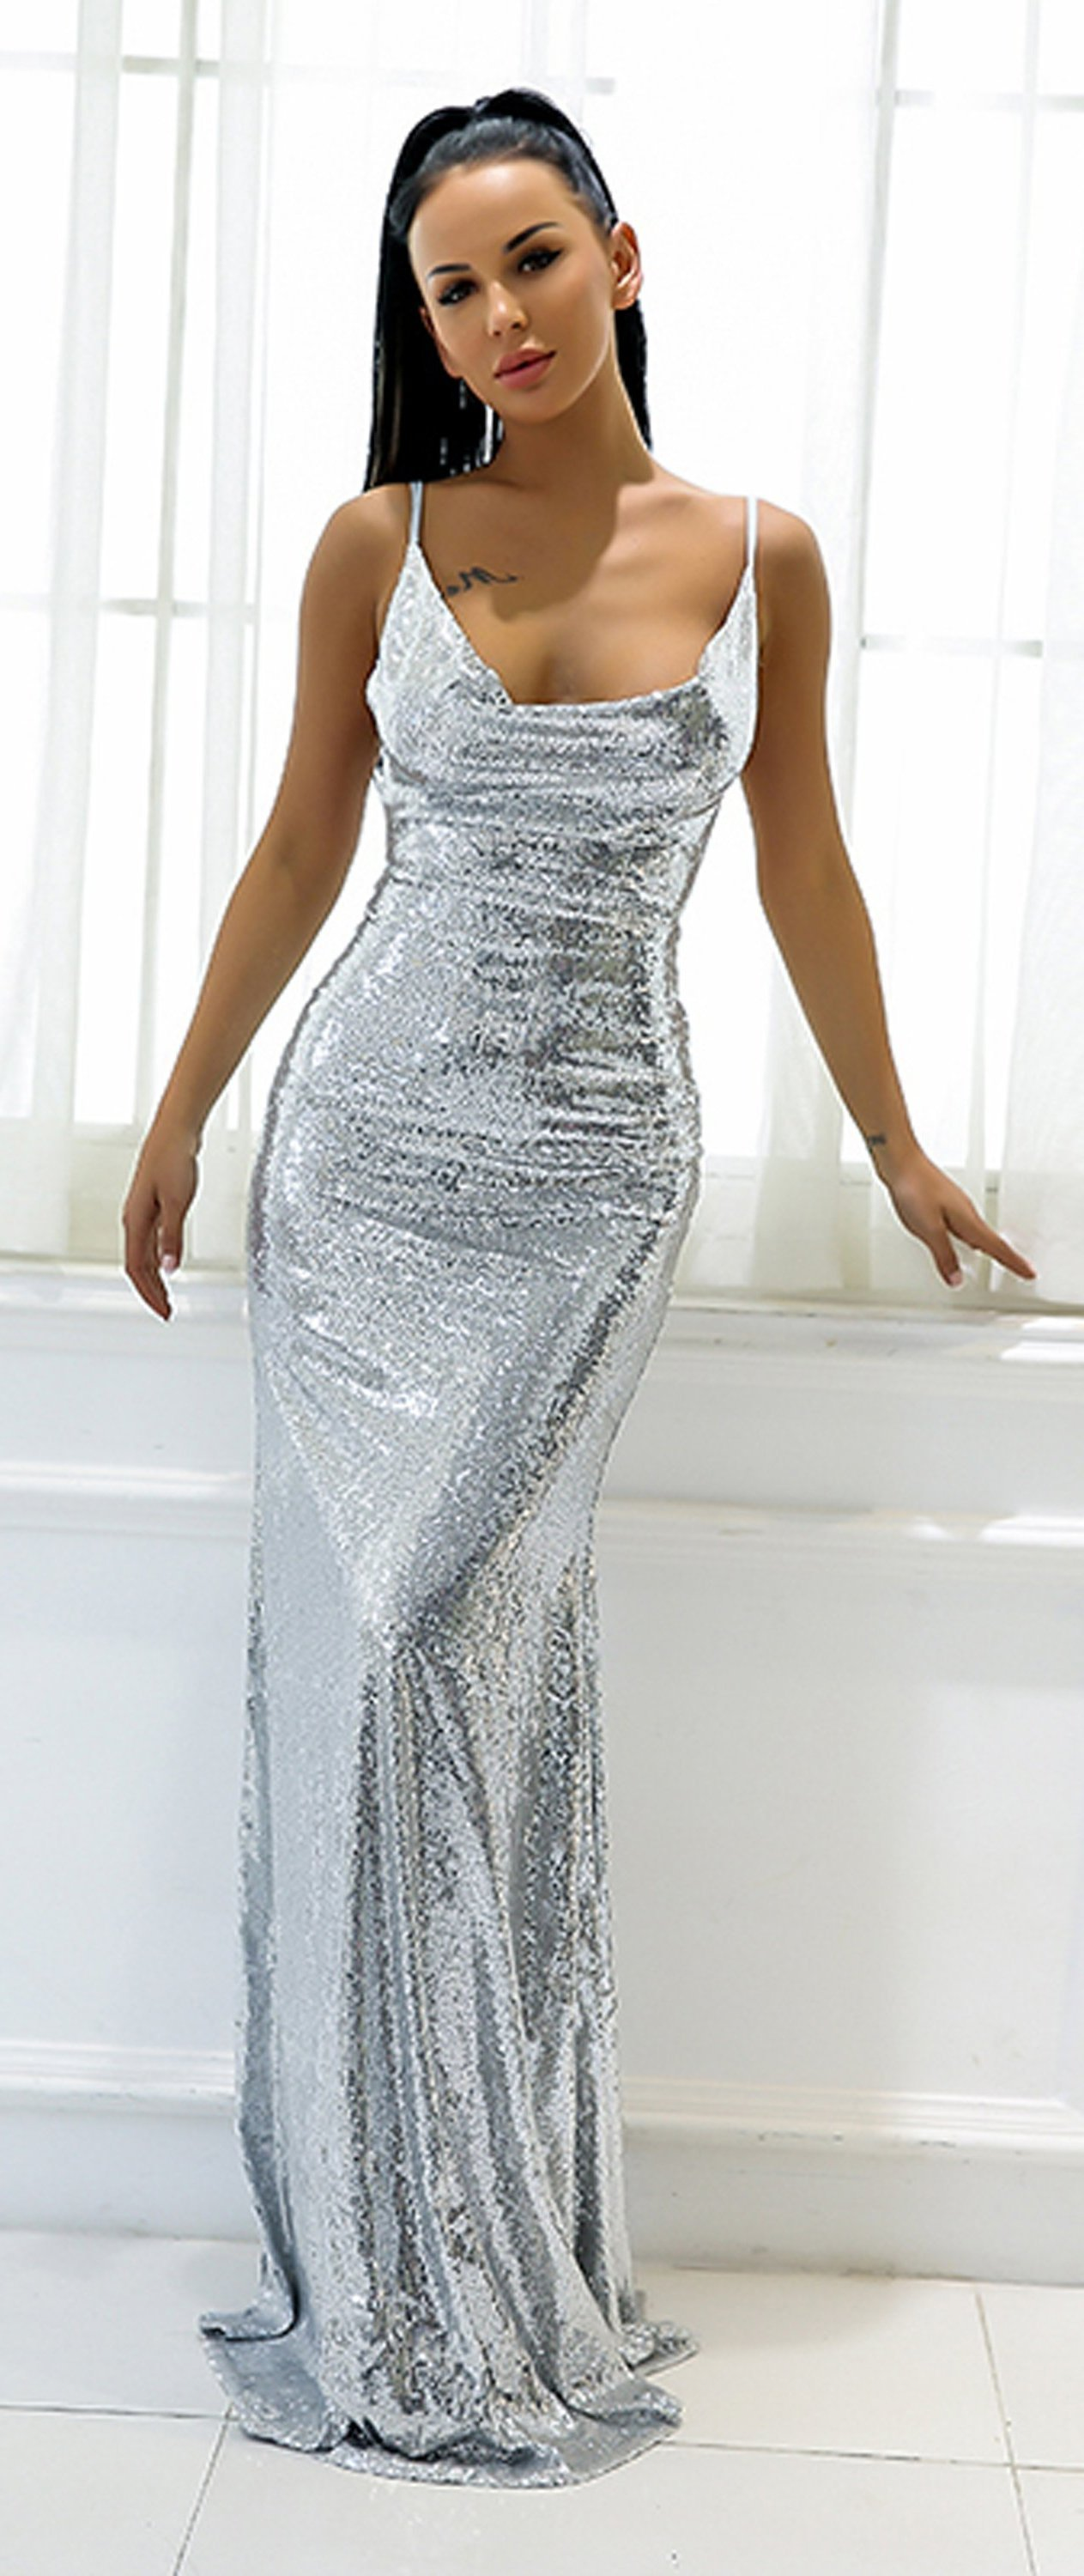 90b2780341b ... Sequin Silver Tight Fitted Slit Floor Length Mermaid Maxi Gown Dress  2018 to Wear to a Wedding as a Guest Cocktail Party Graduation Evening -  www.